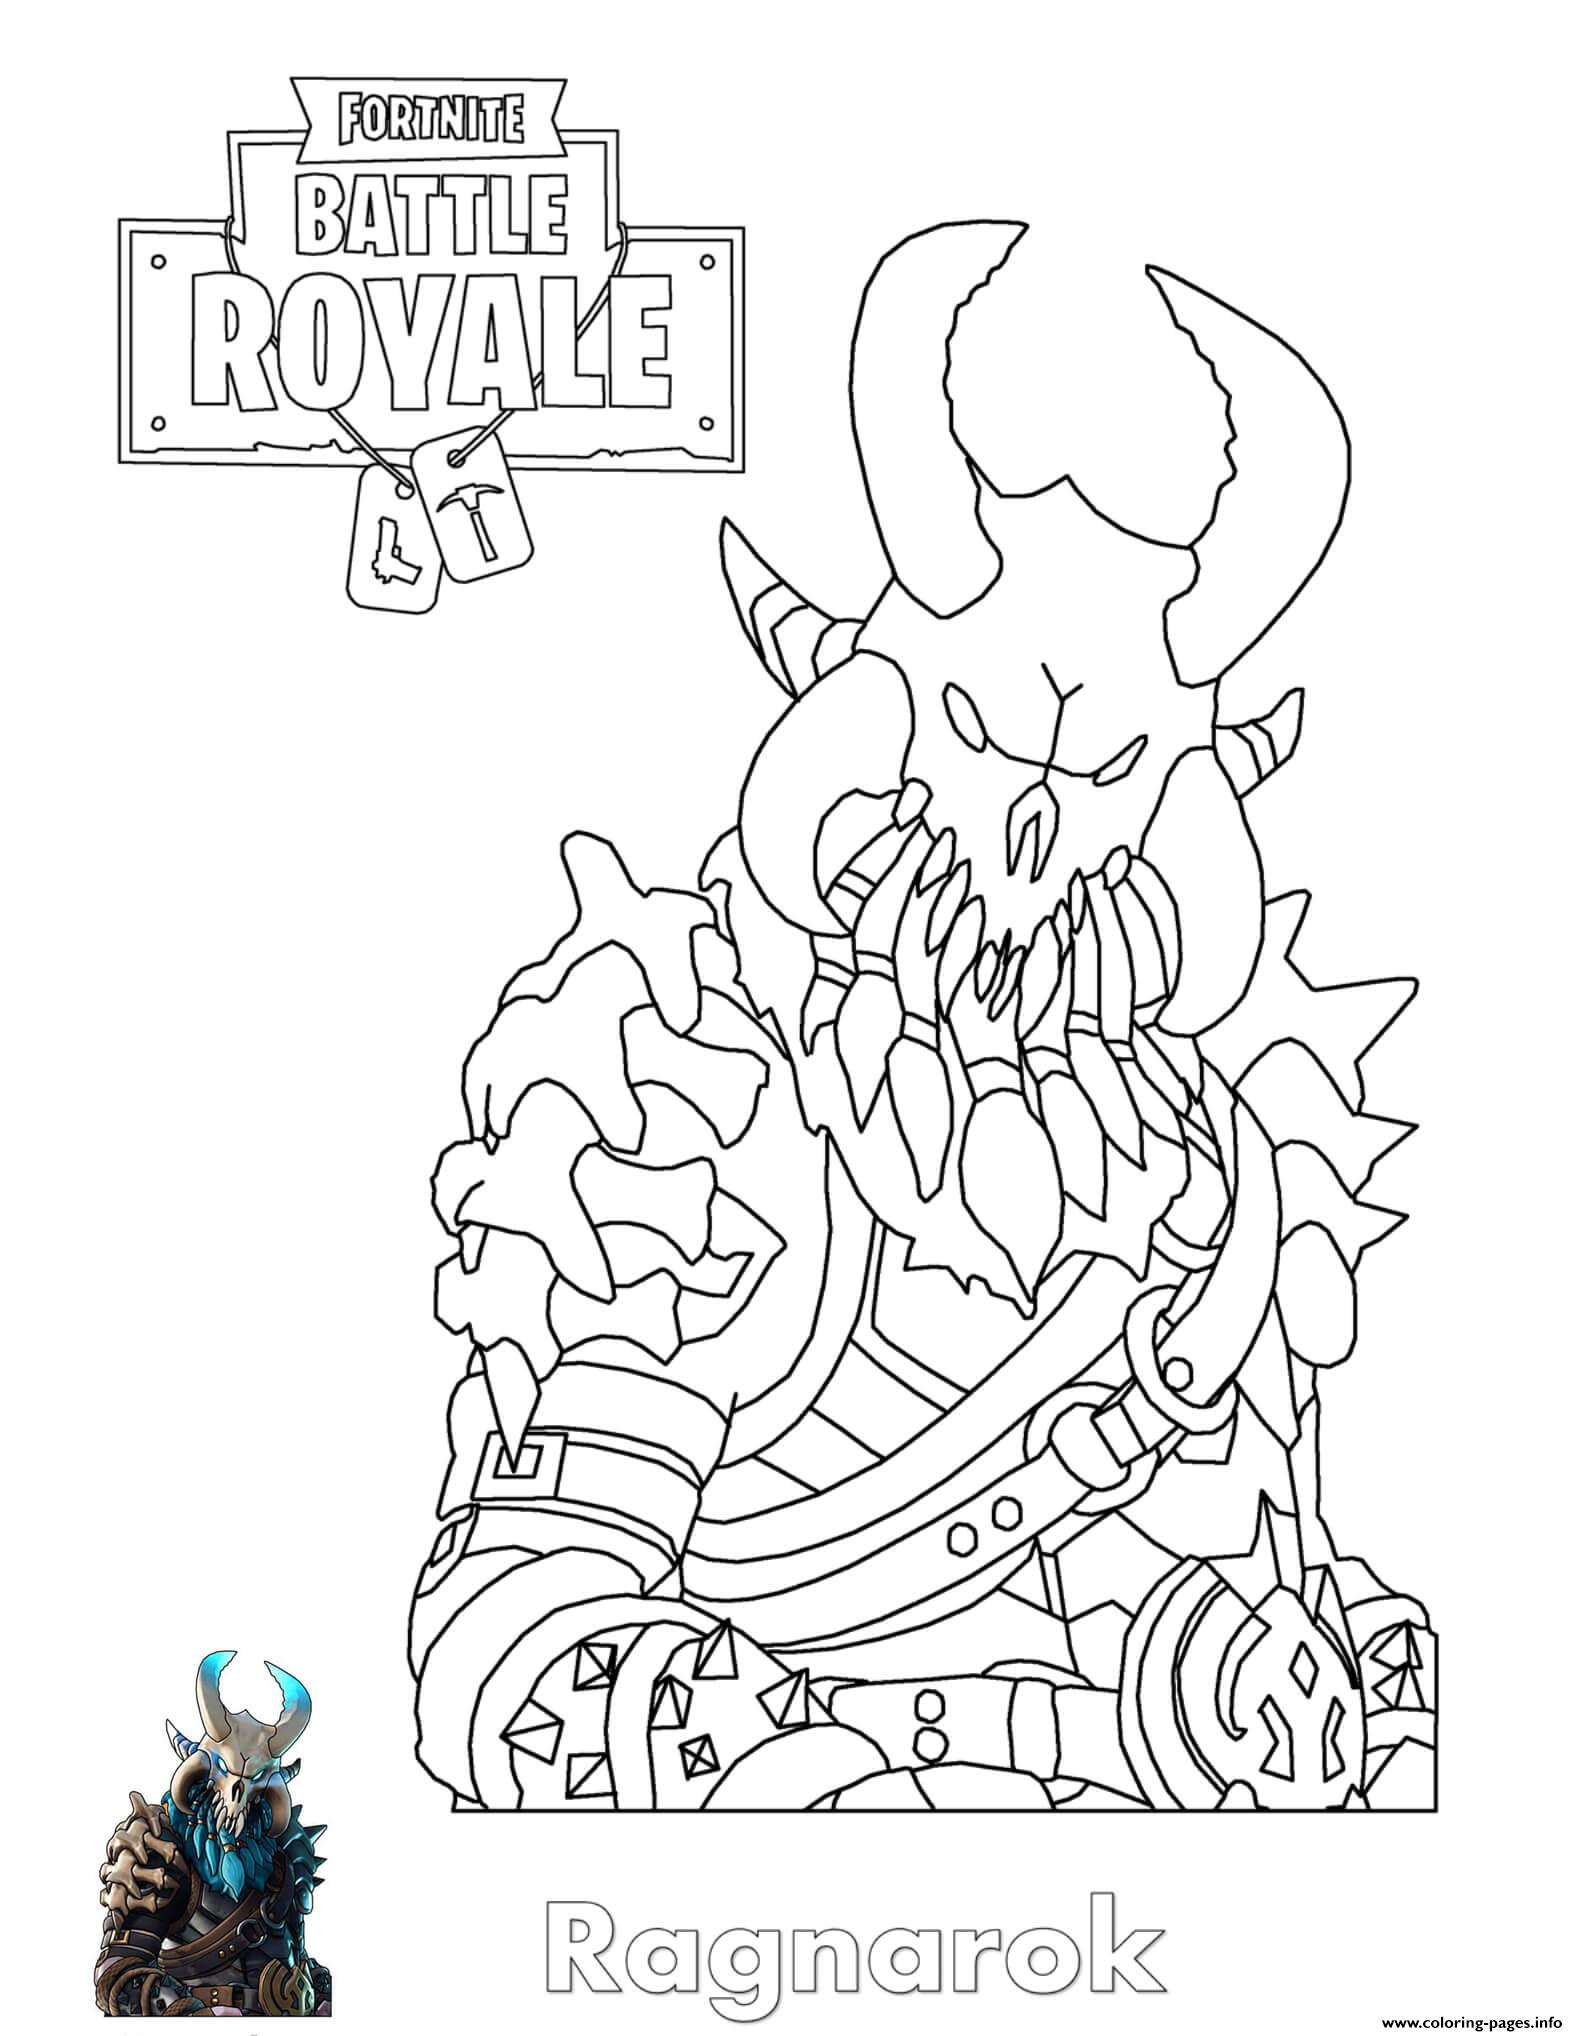 Ragnarok Fortnite Coloring Pages Printable